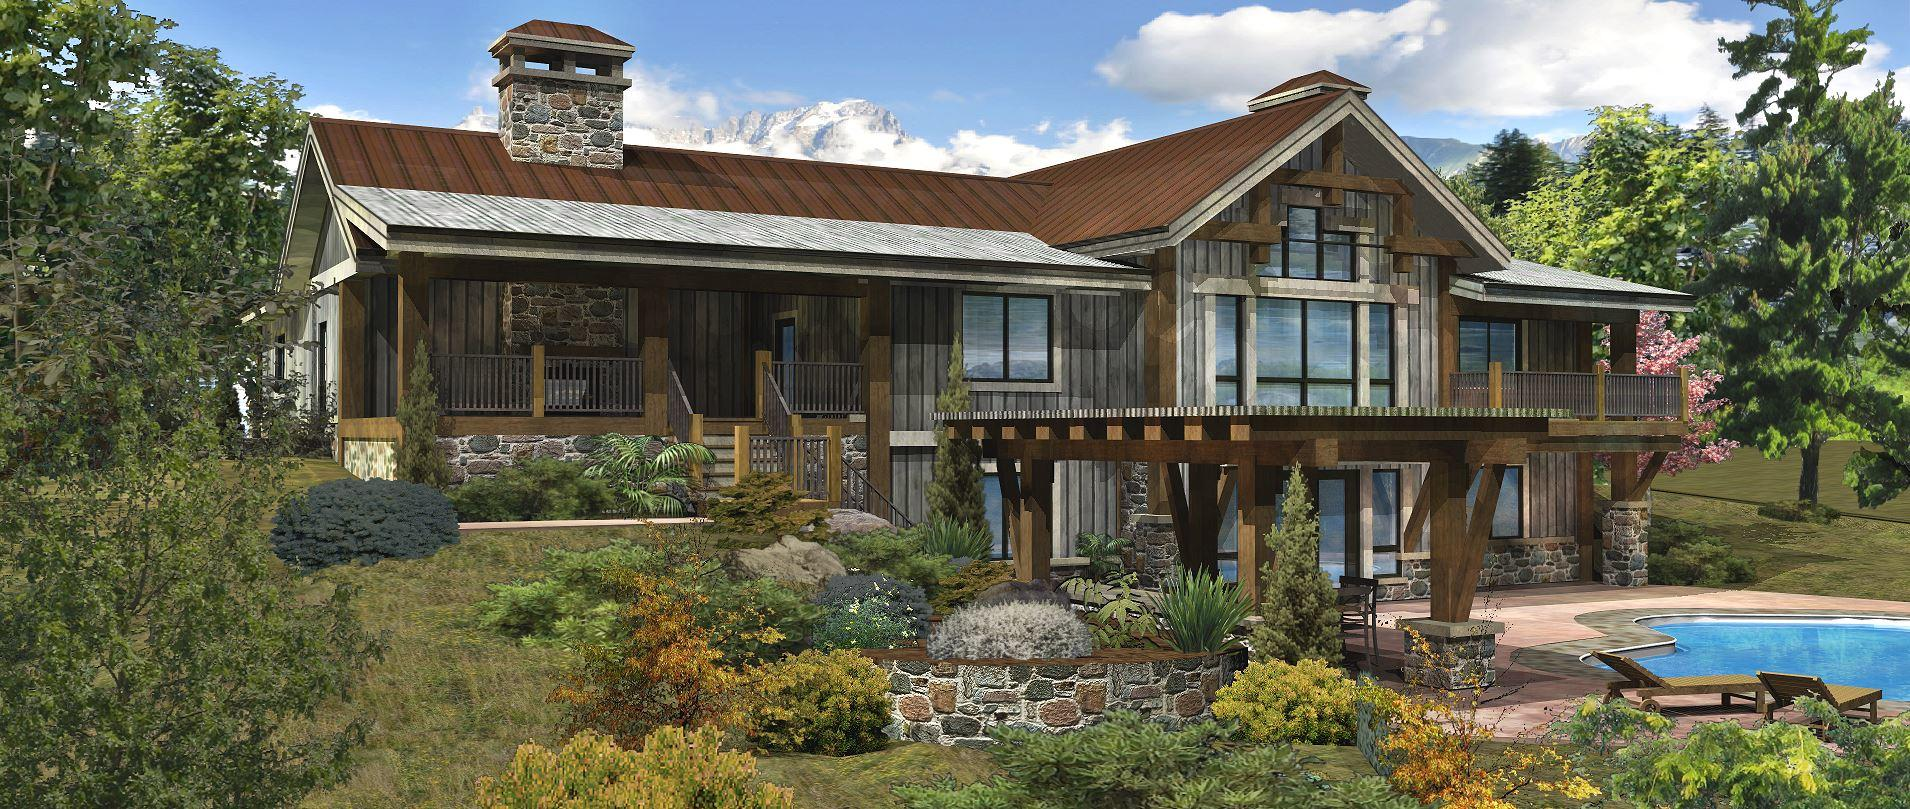 Bear River - Rear Rendering by Wisconsin Log Homes 3